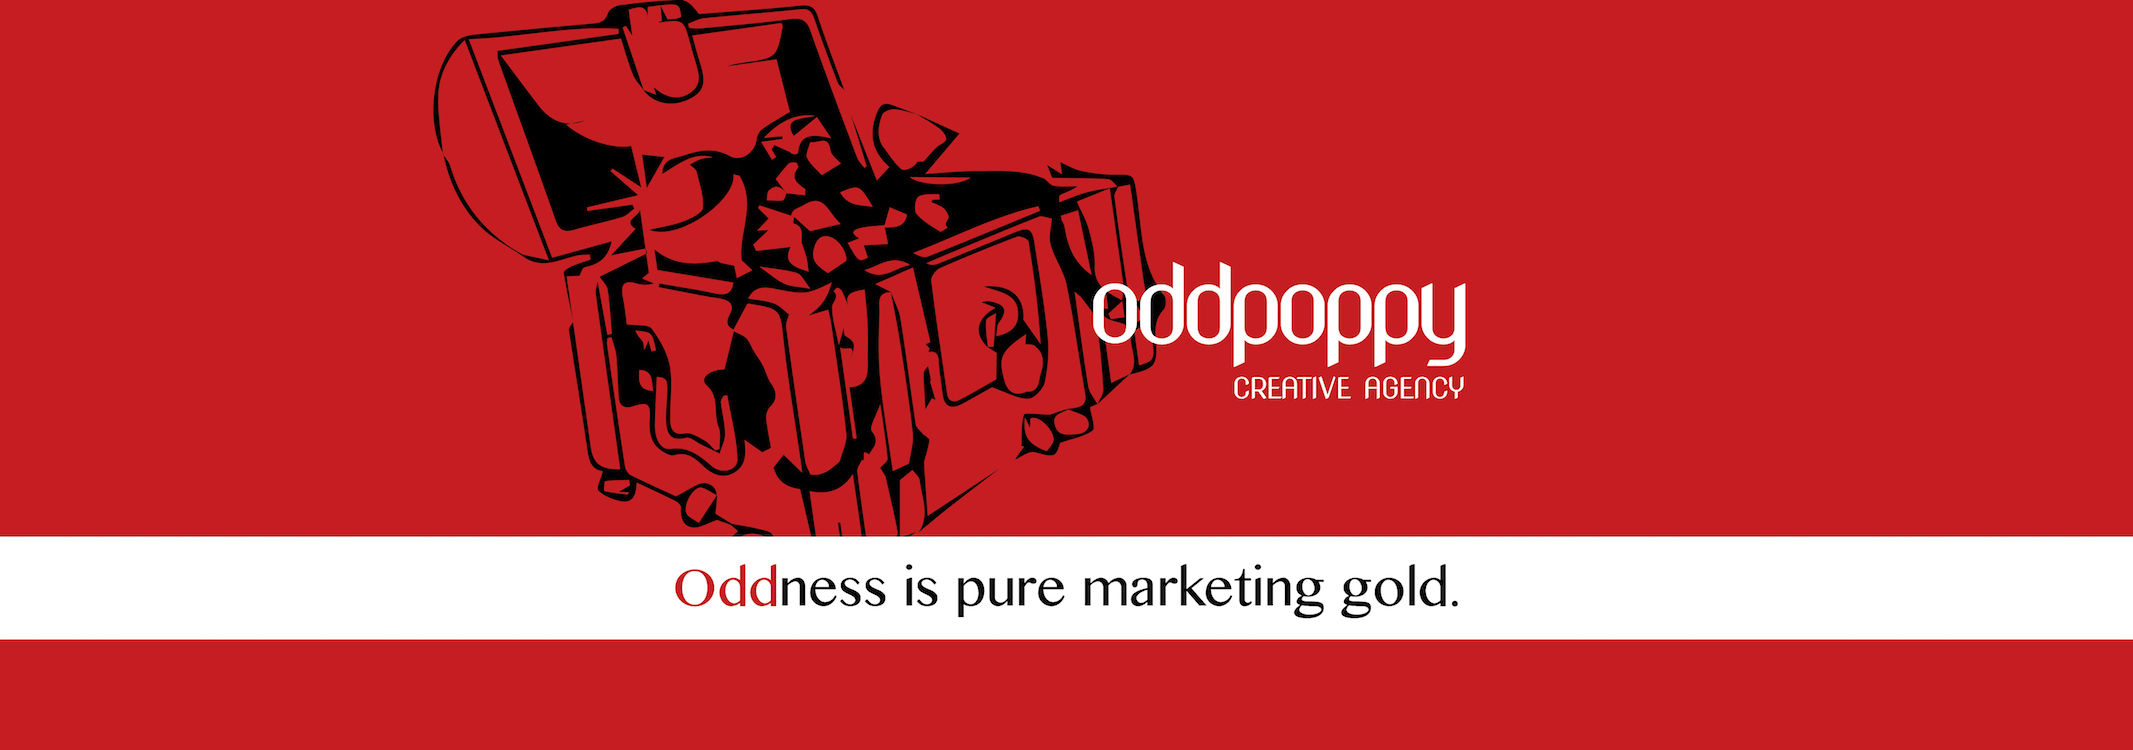 Odd Poppy Creative | Advertising Agency | Johannesburg | Cape Town4